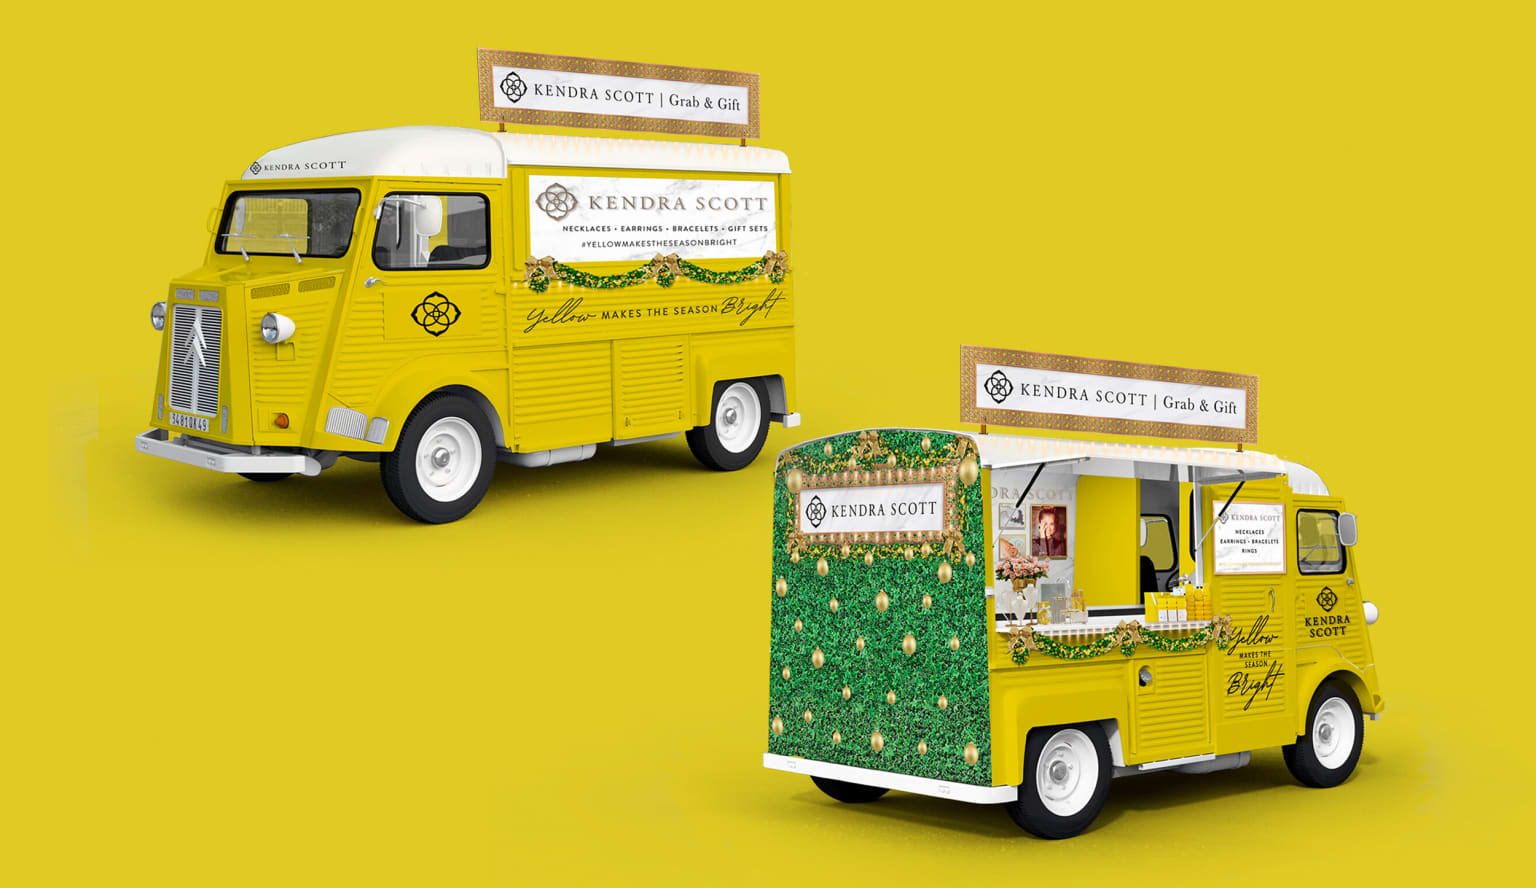 KENDRA SCOTT MOBILE STORE